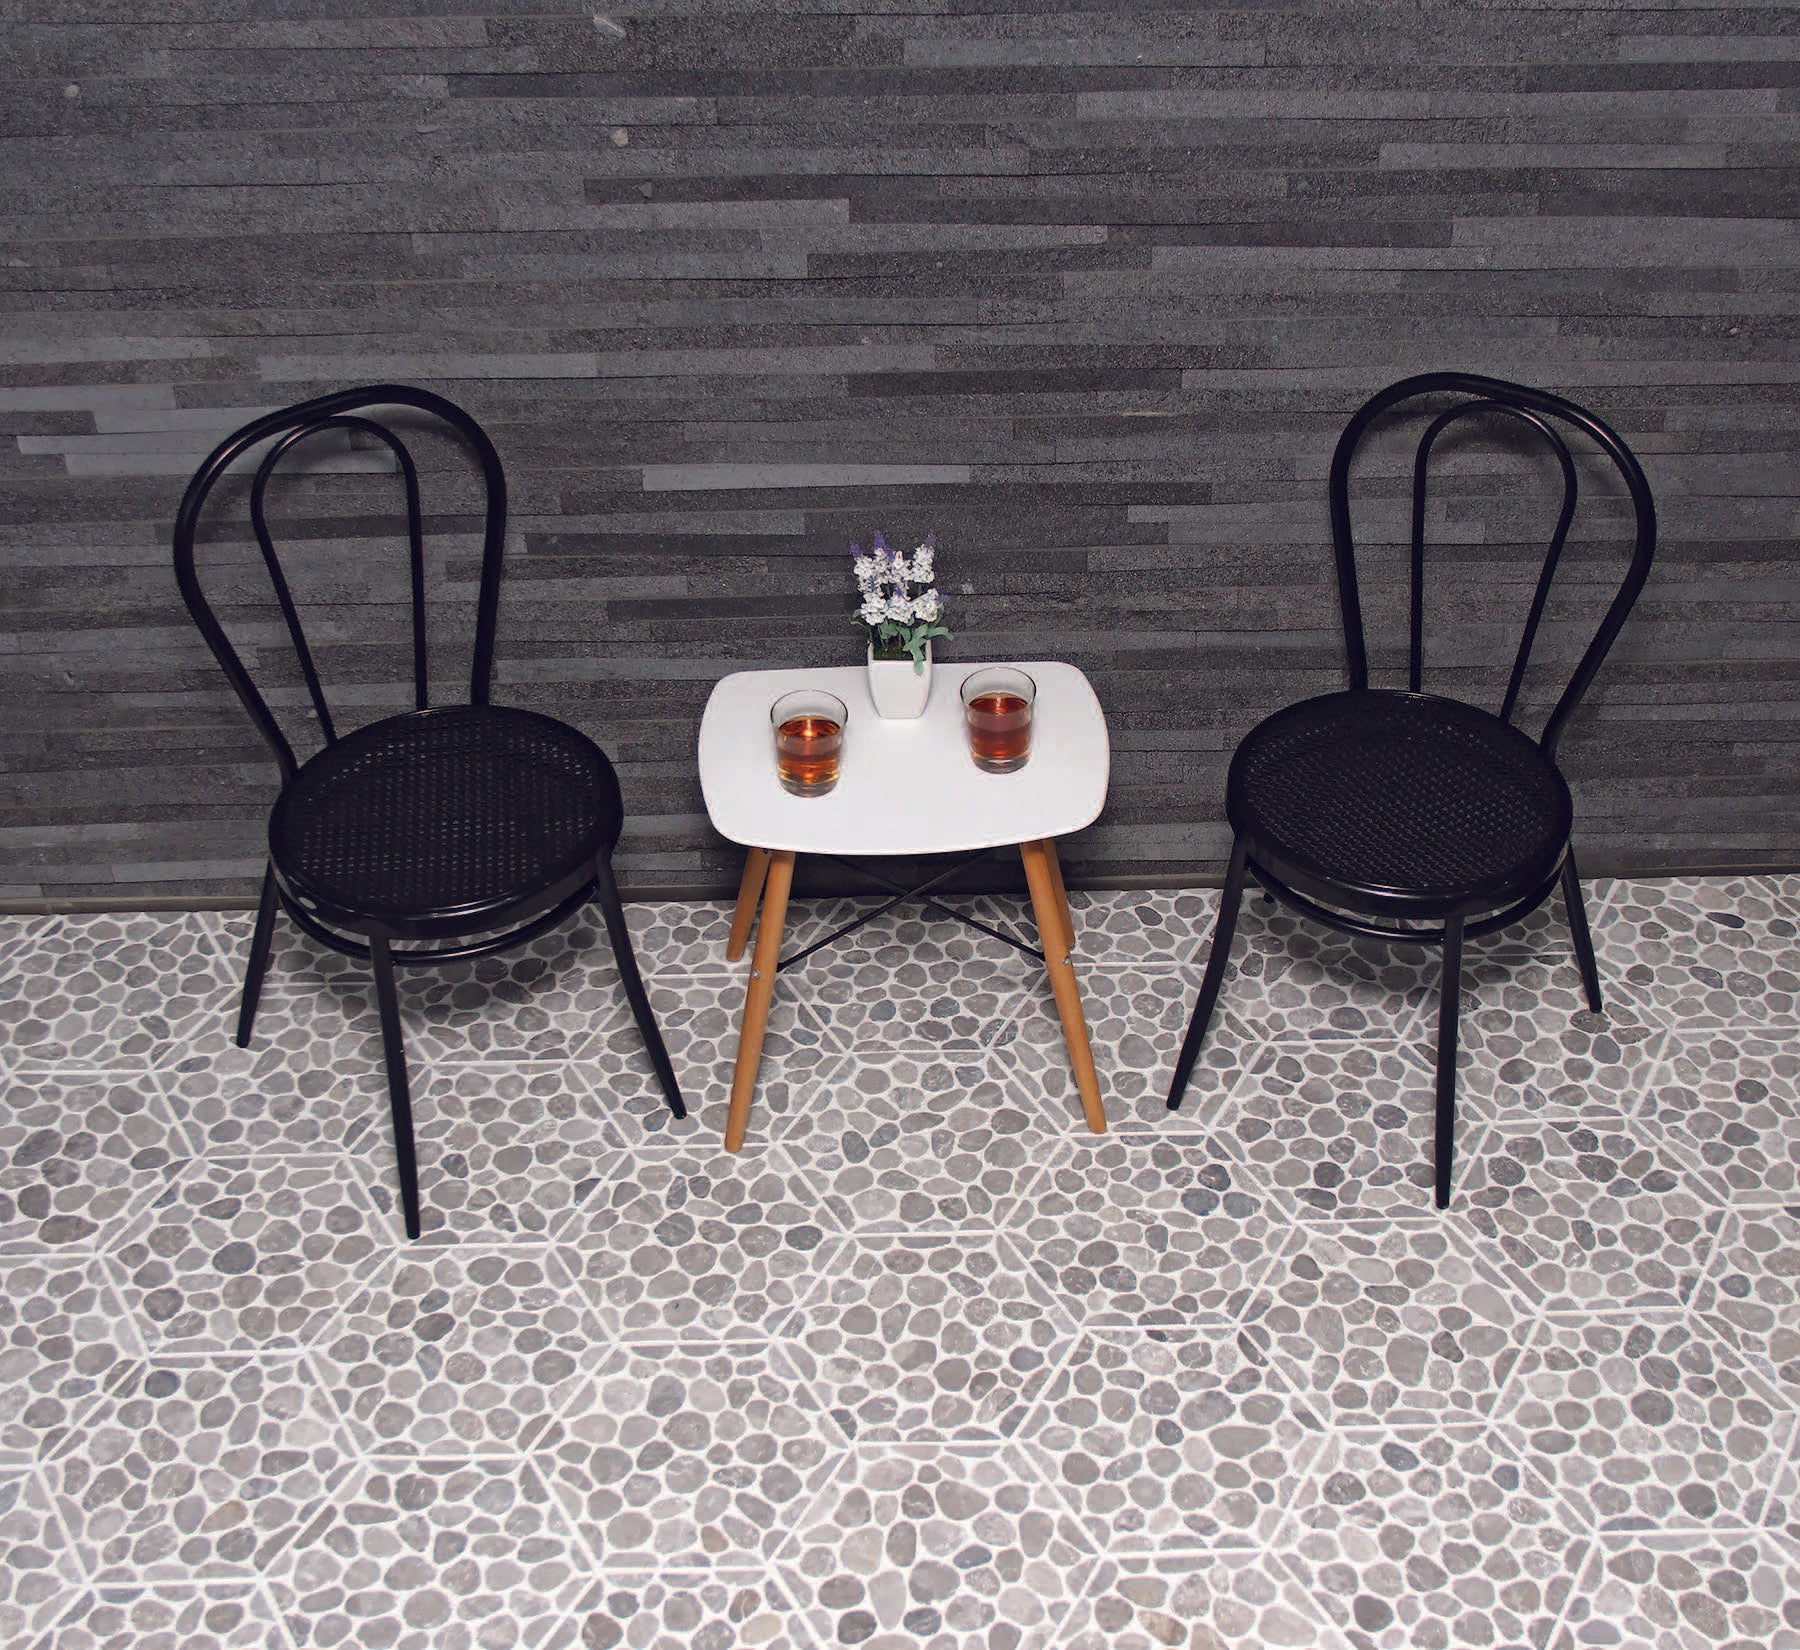 TAN MARBLE, HONEYCOMB COBBLES - Island, Random Series (MINIMUM ORDER REQUIRED OF 250 SF)